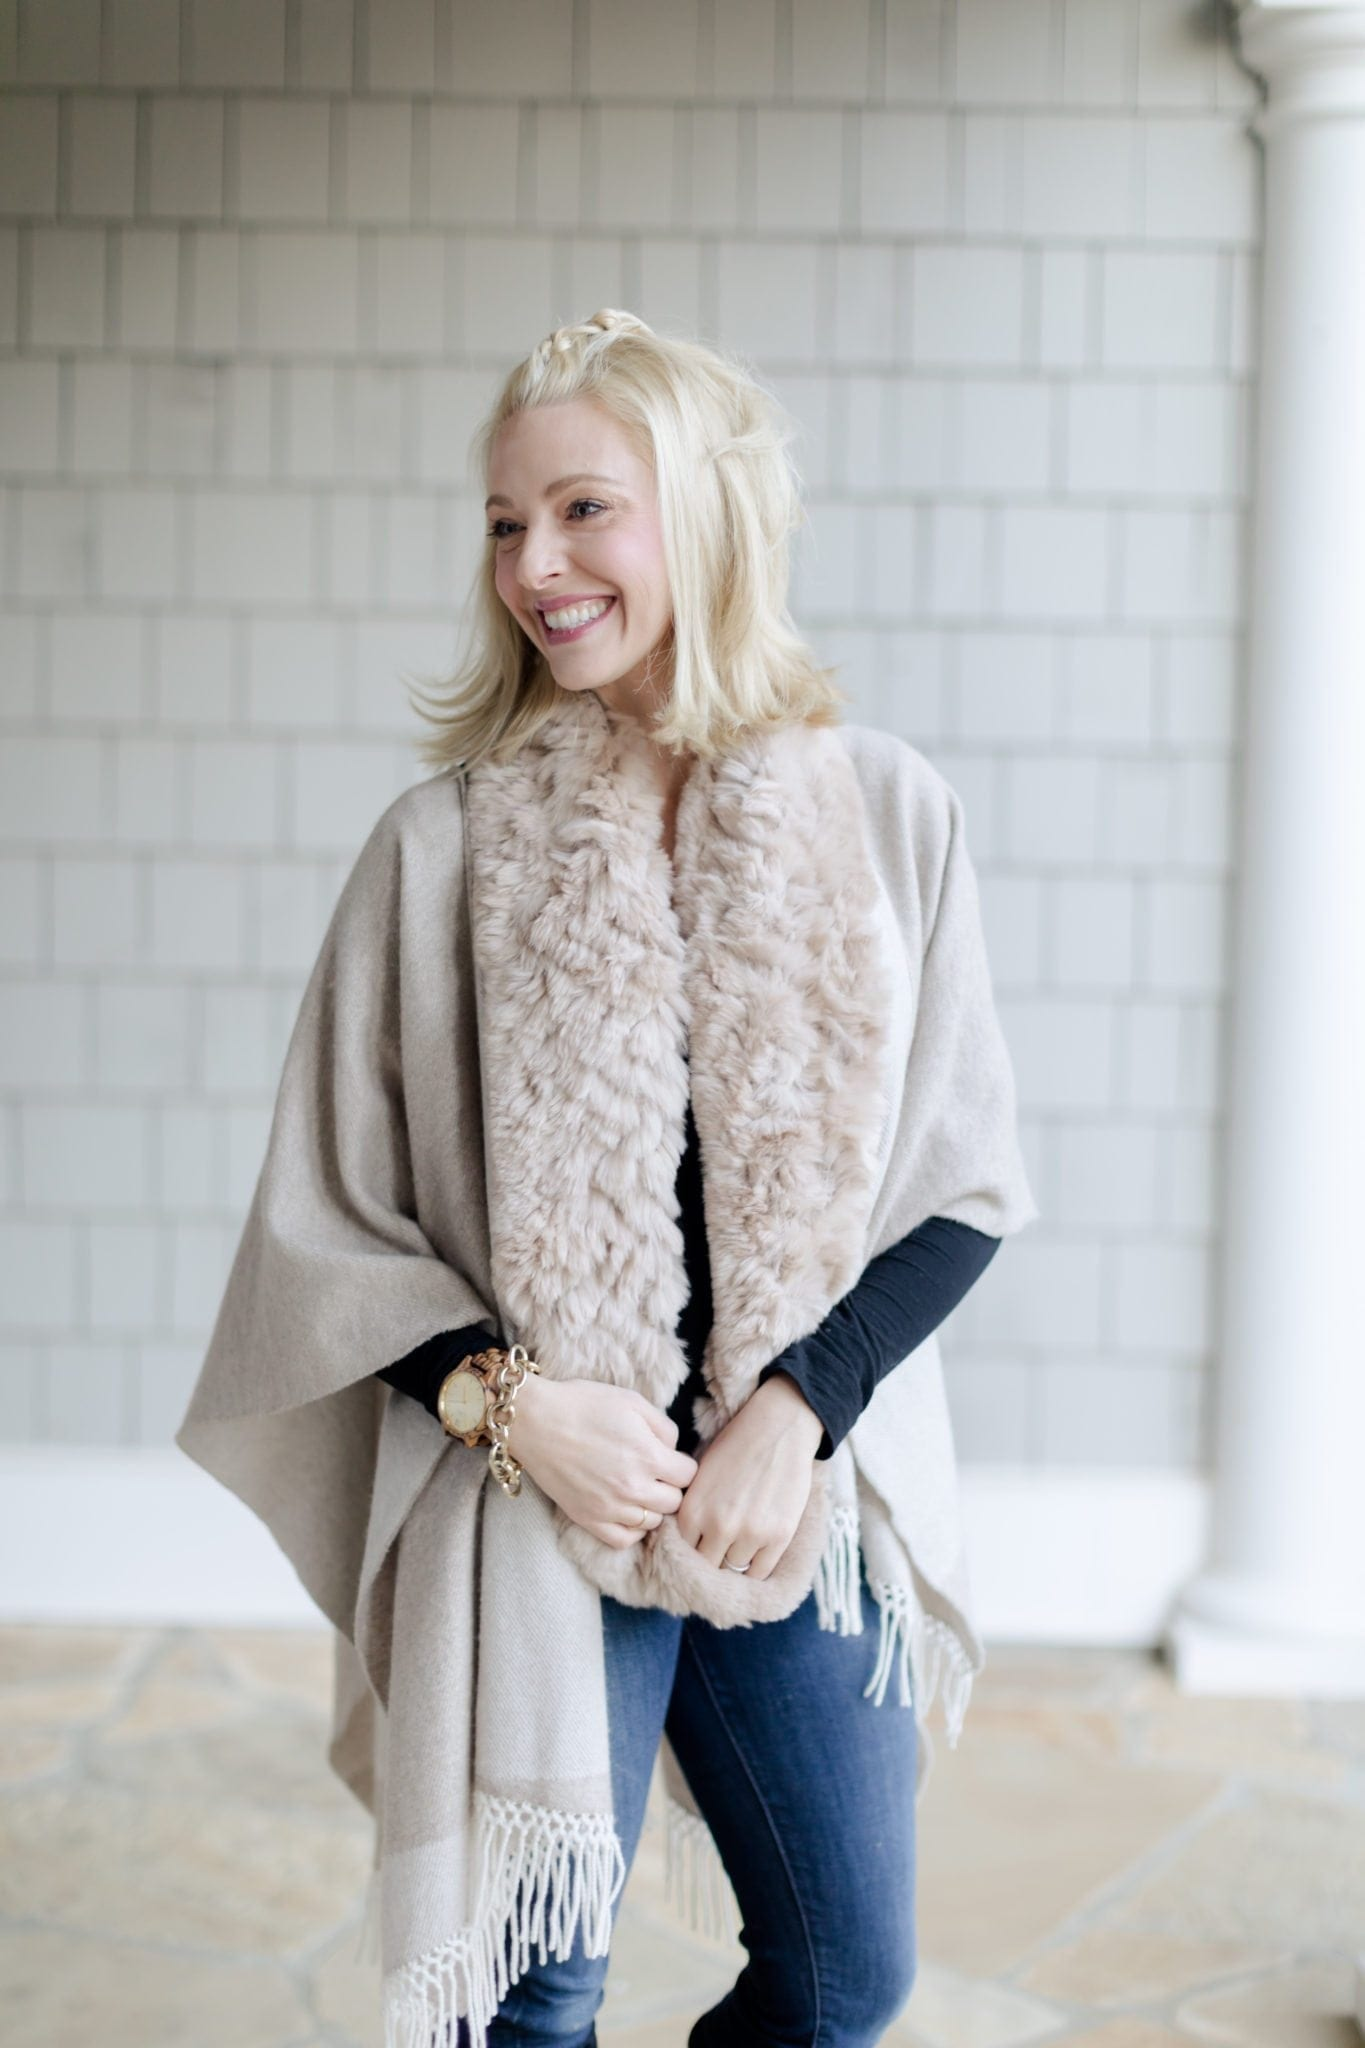 Stylish women's ponchos and capes are so versatile for all winter temps. This pretty outfit also has a real fur scarf paired with knee high suede boots!